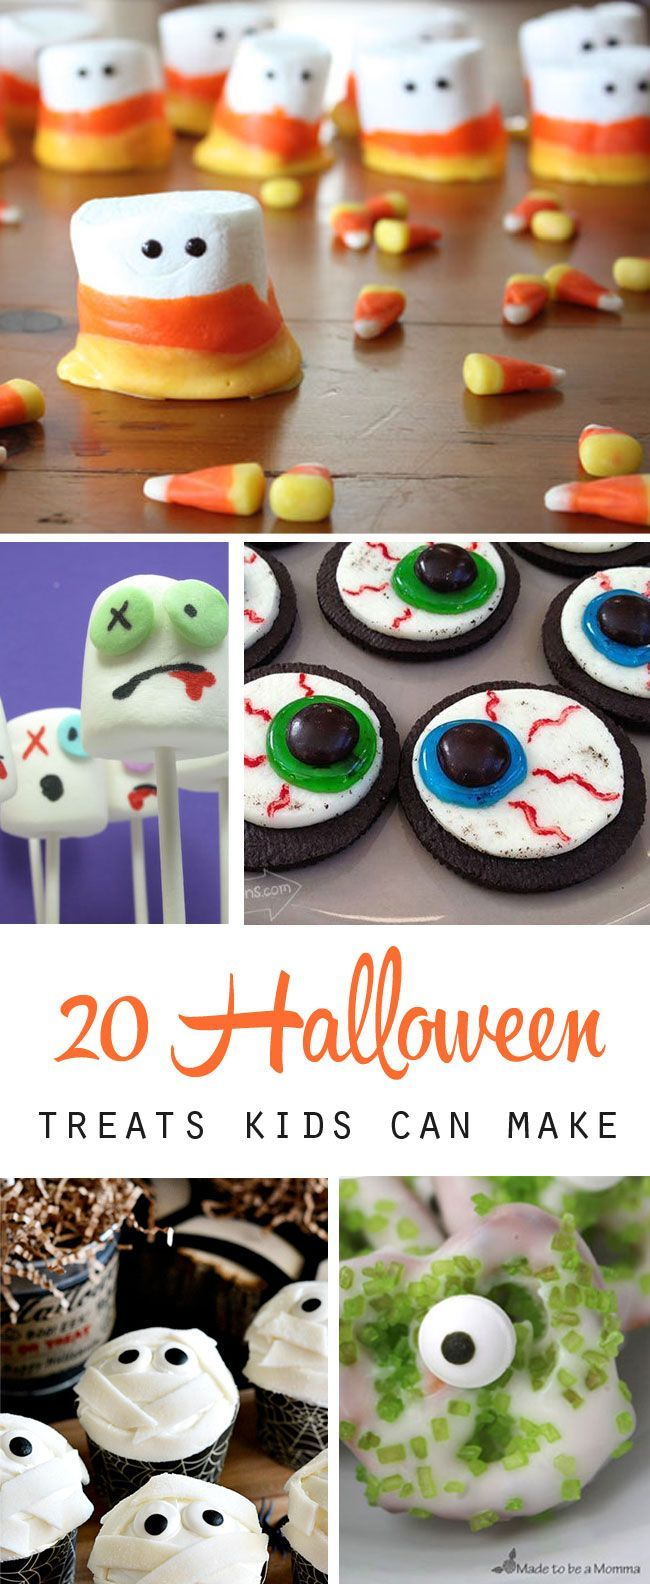 20 fun Halloween treats to make with your kids - easy food crafts and fun recipe ideas, perfect for a party or an after school activity.